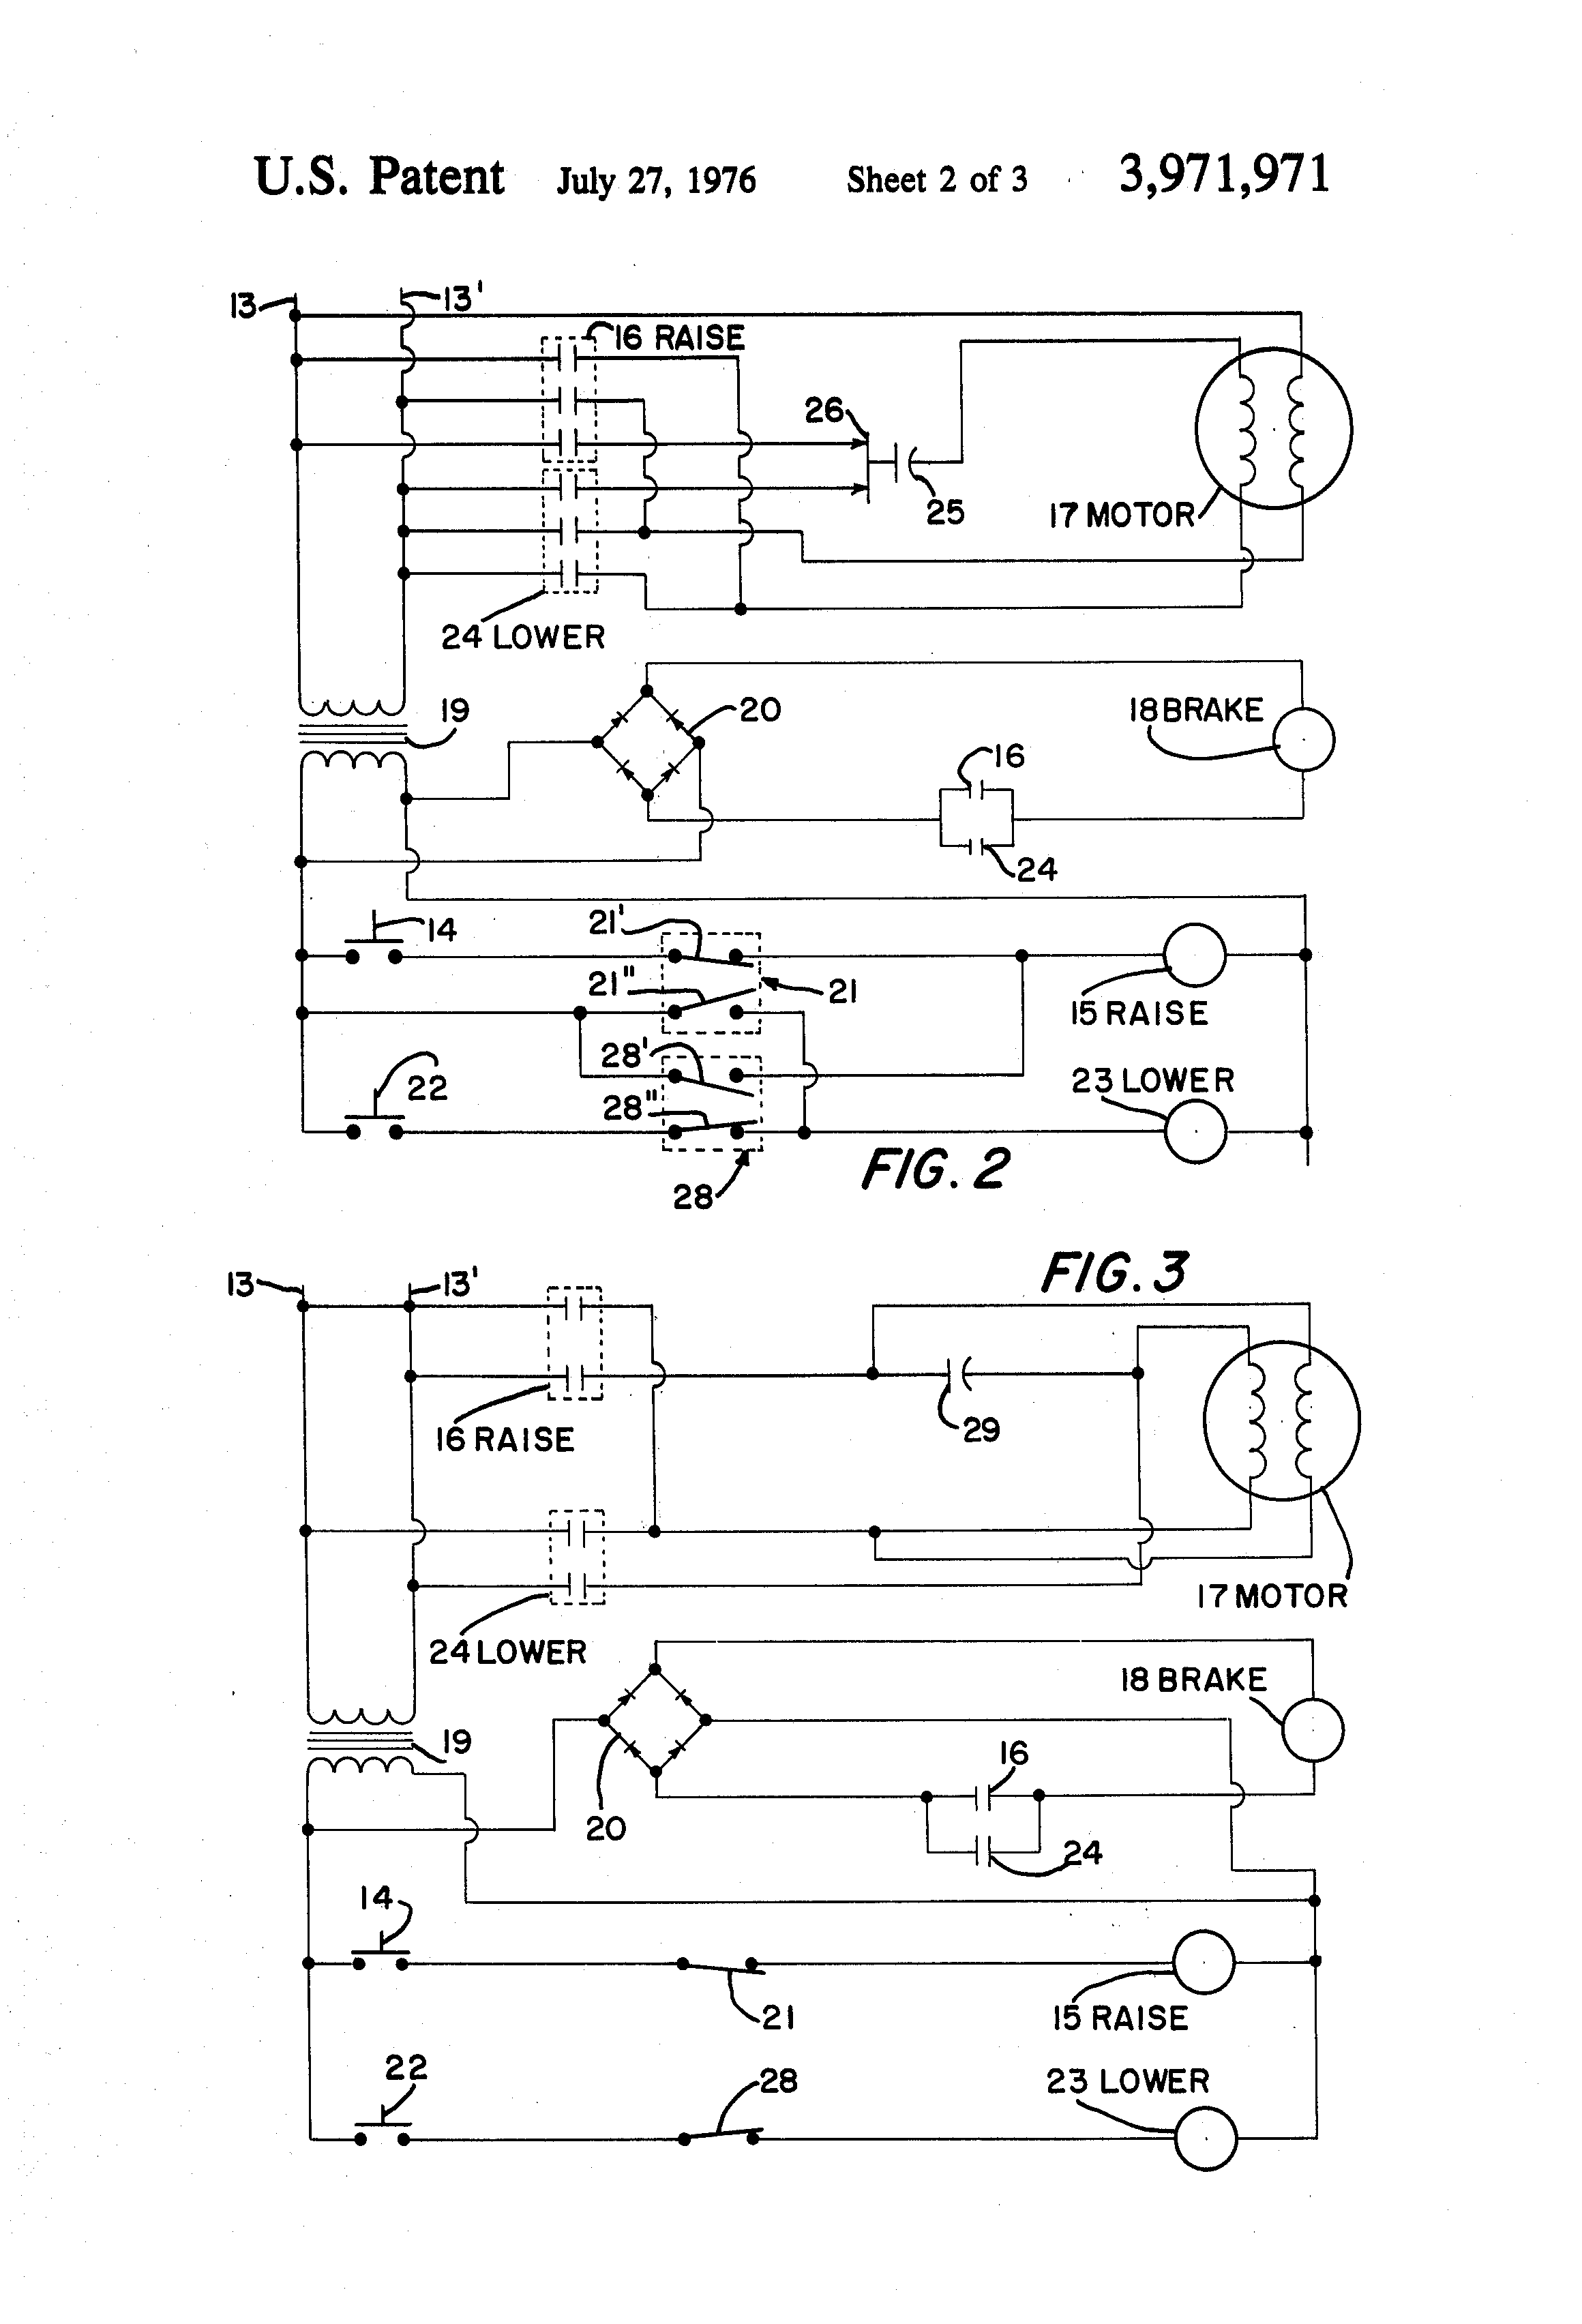 US3971971 2 demag motor wiring diagram ingersoll rand wiring diagram \u2022 wiring ingersoll rand wiring diagrams at arjmand.co